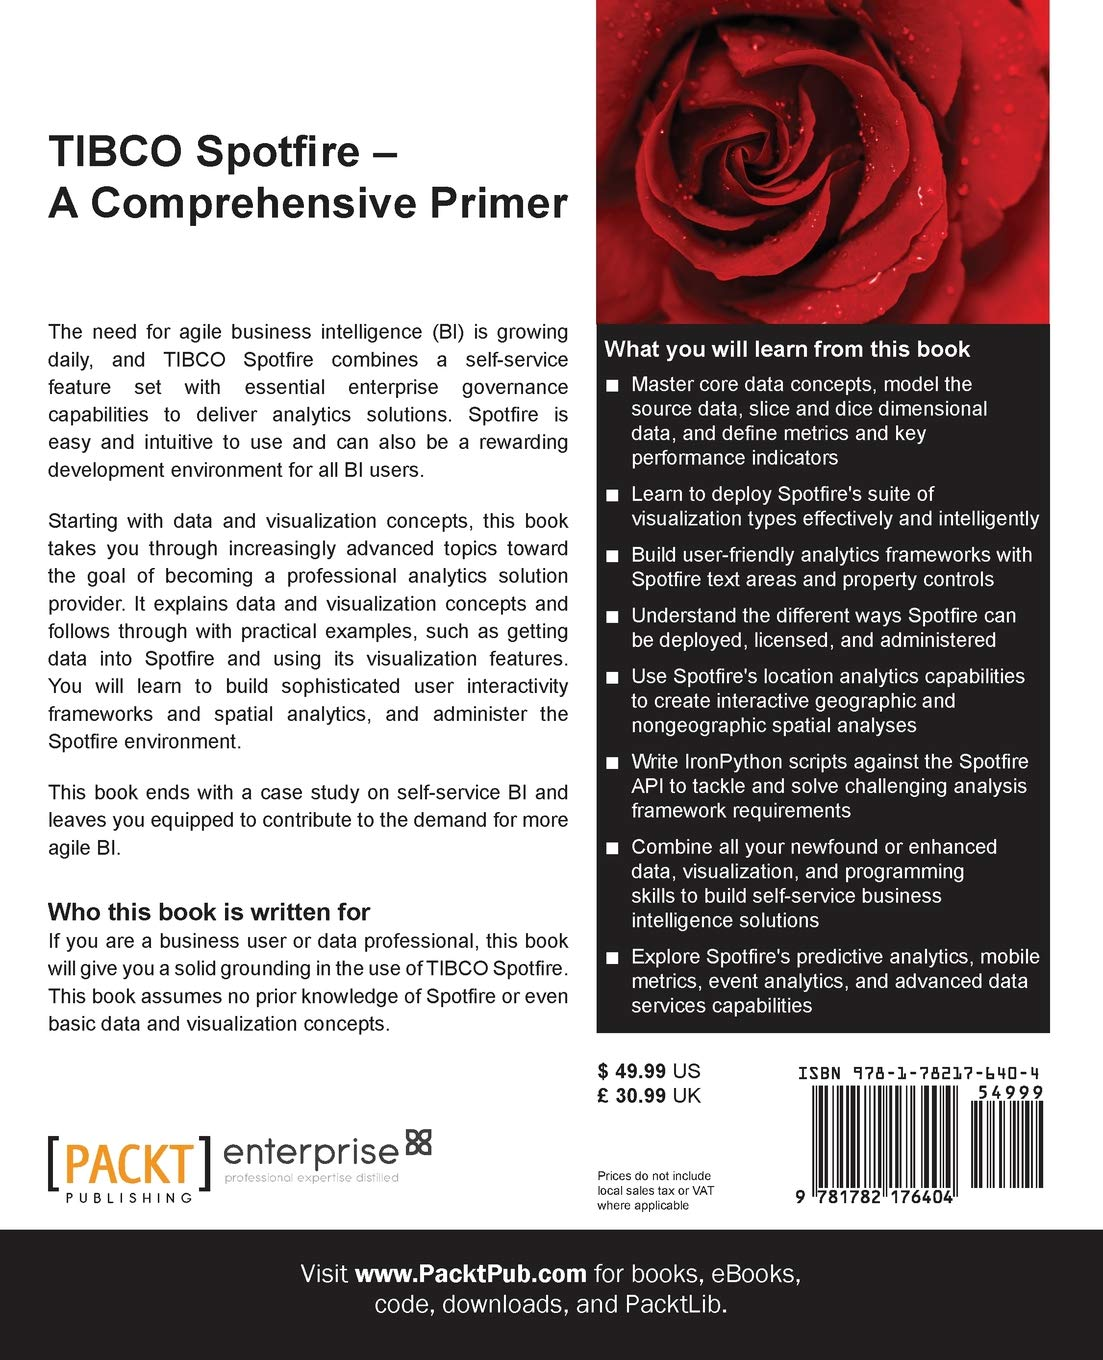 Amazon com: TIBCO Spotfire: A Comprehensive Primer (9781782176404